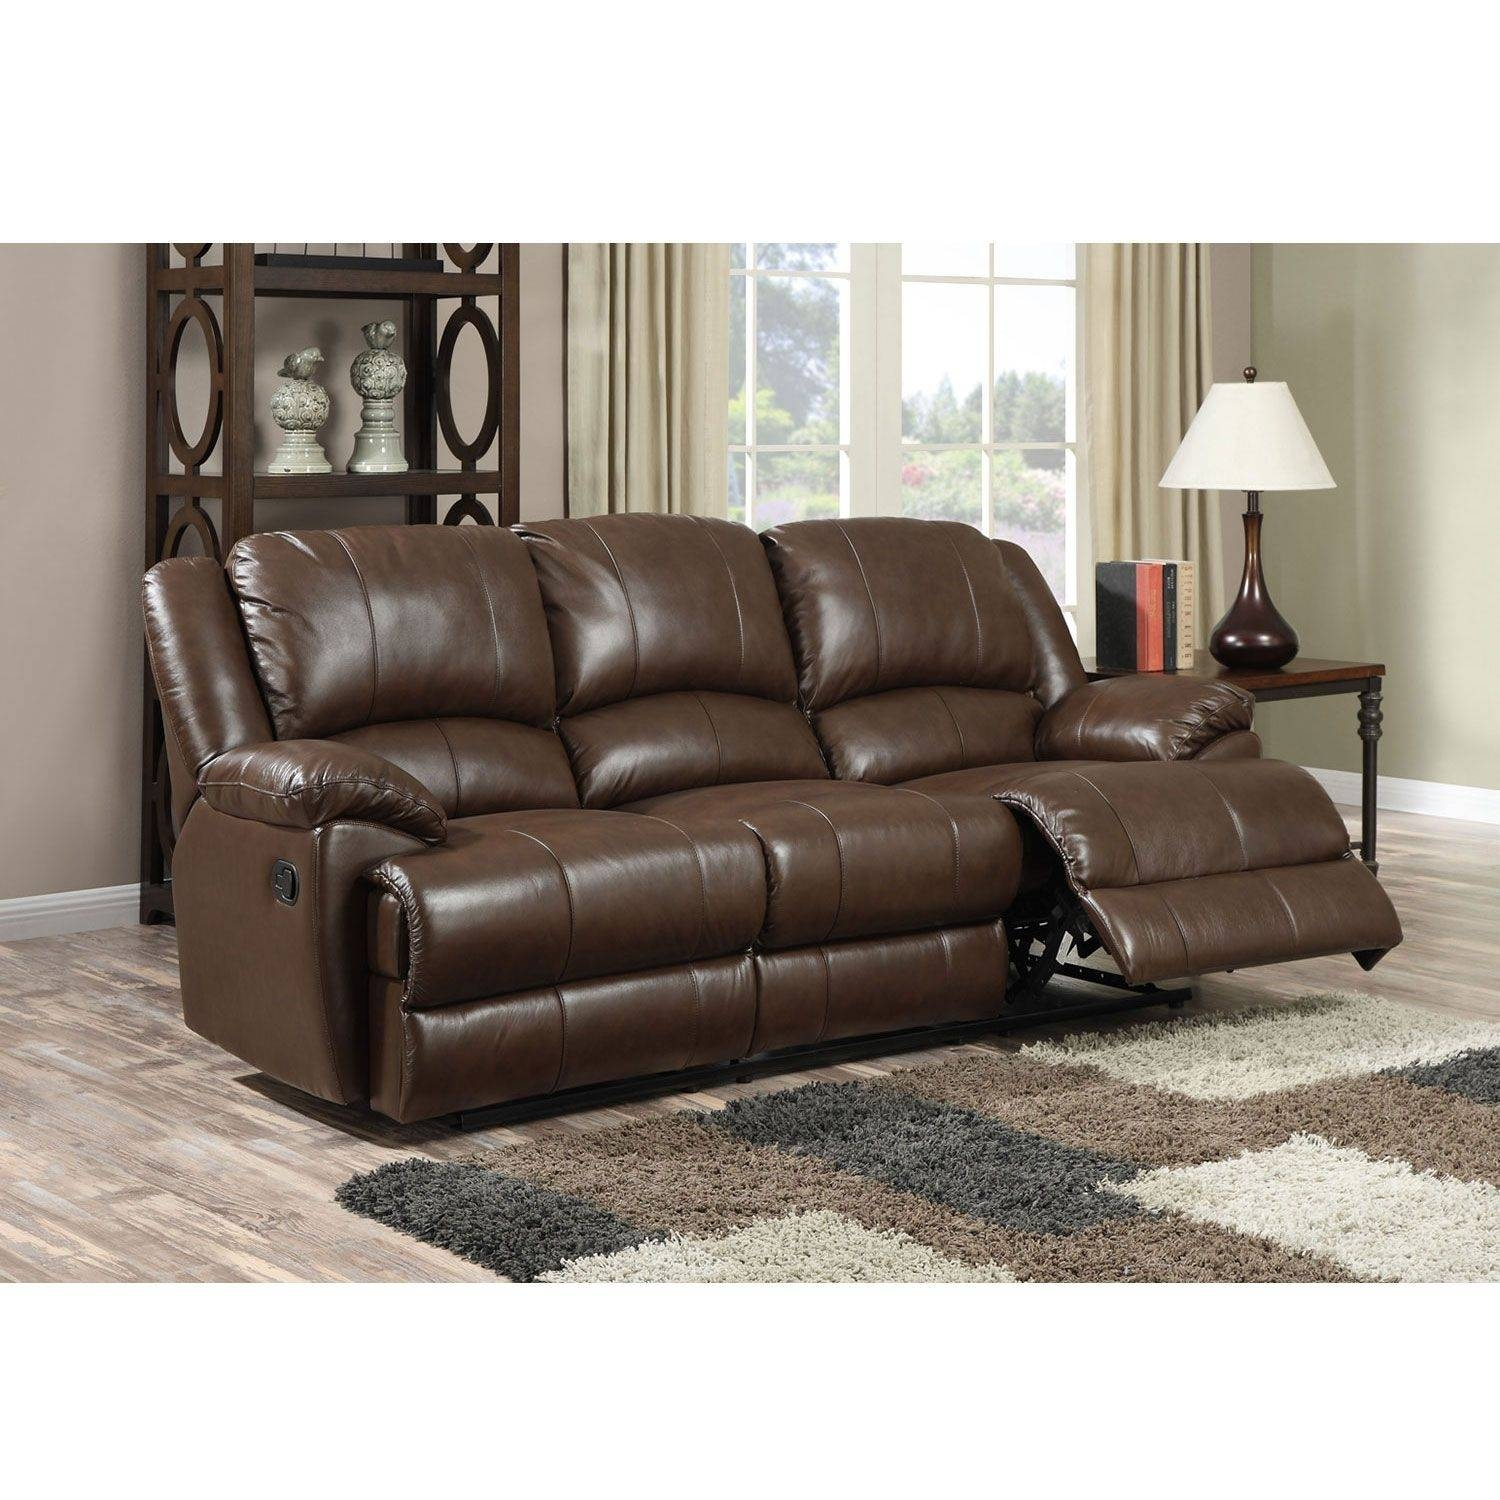 Sofas Center : Costcoower Reclining Sofa Recliner Berkline Sofas pertaining to Berkline Sofa Recliner (Image 24 of 30)